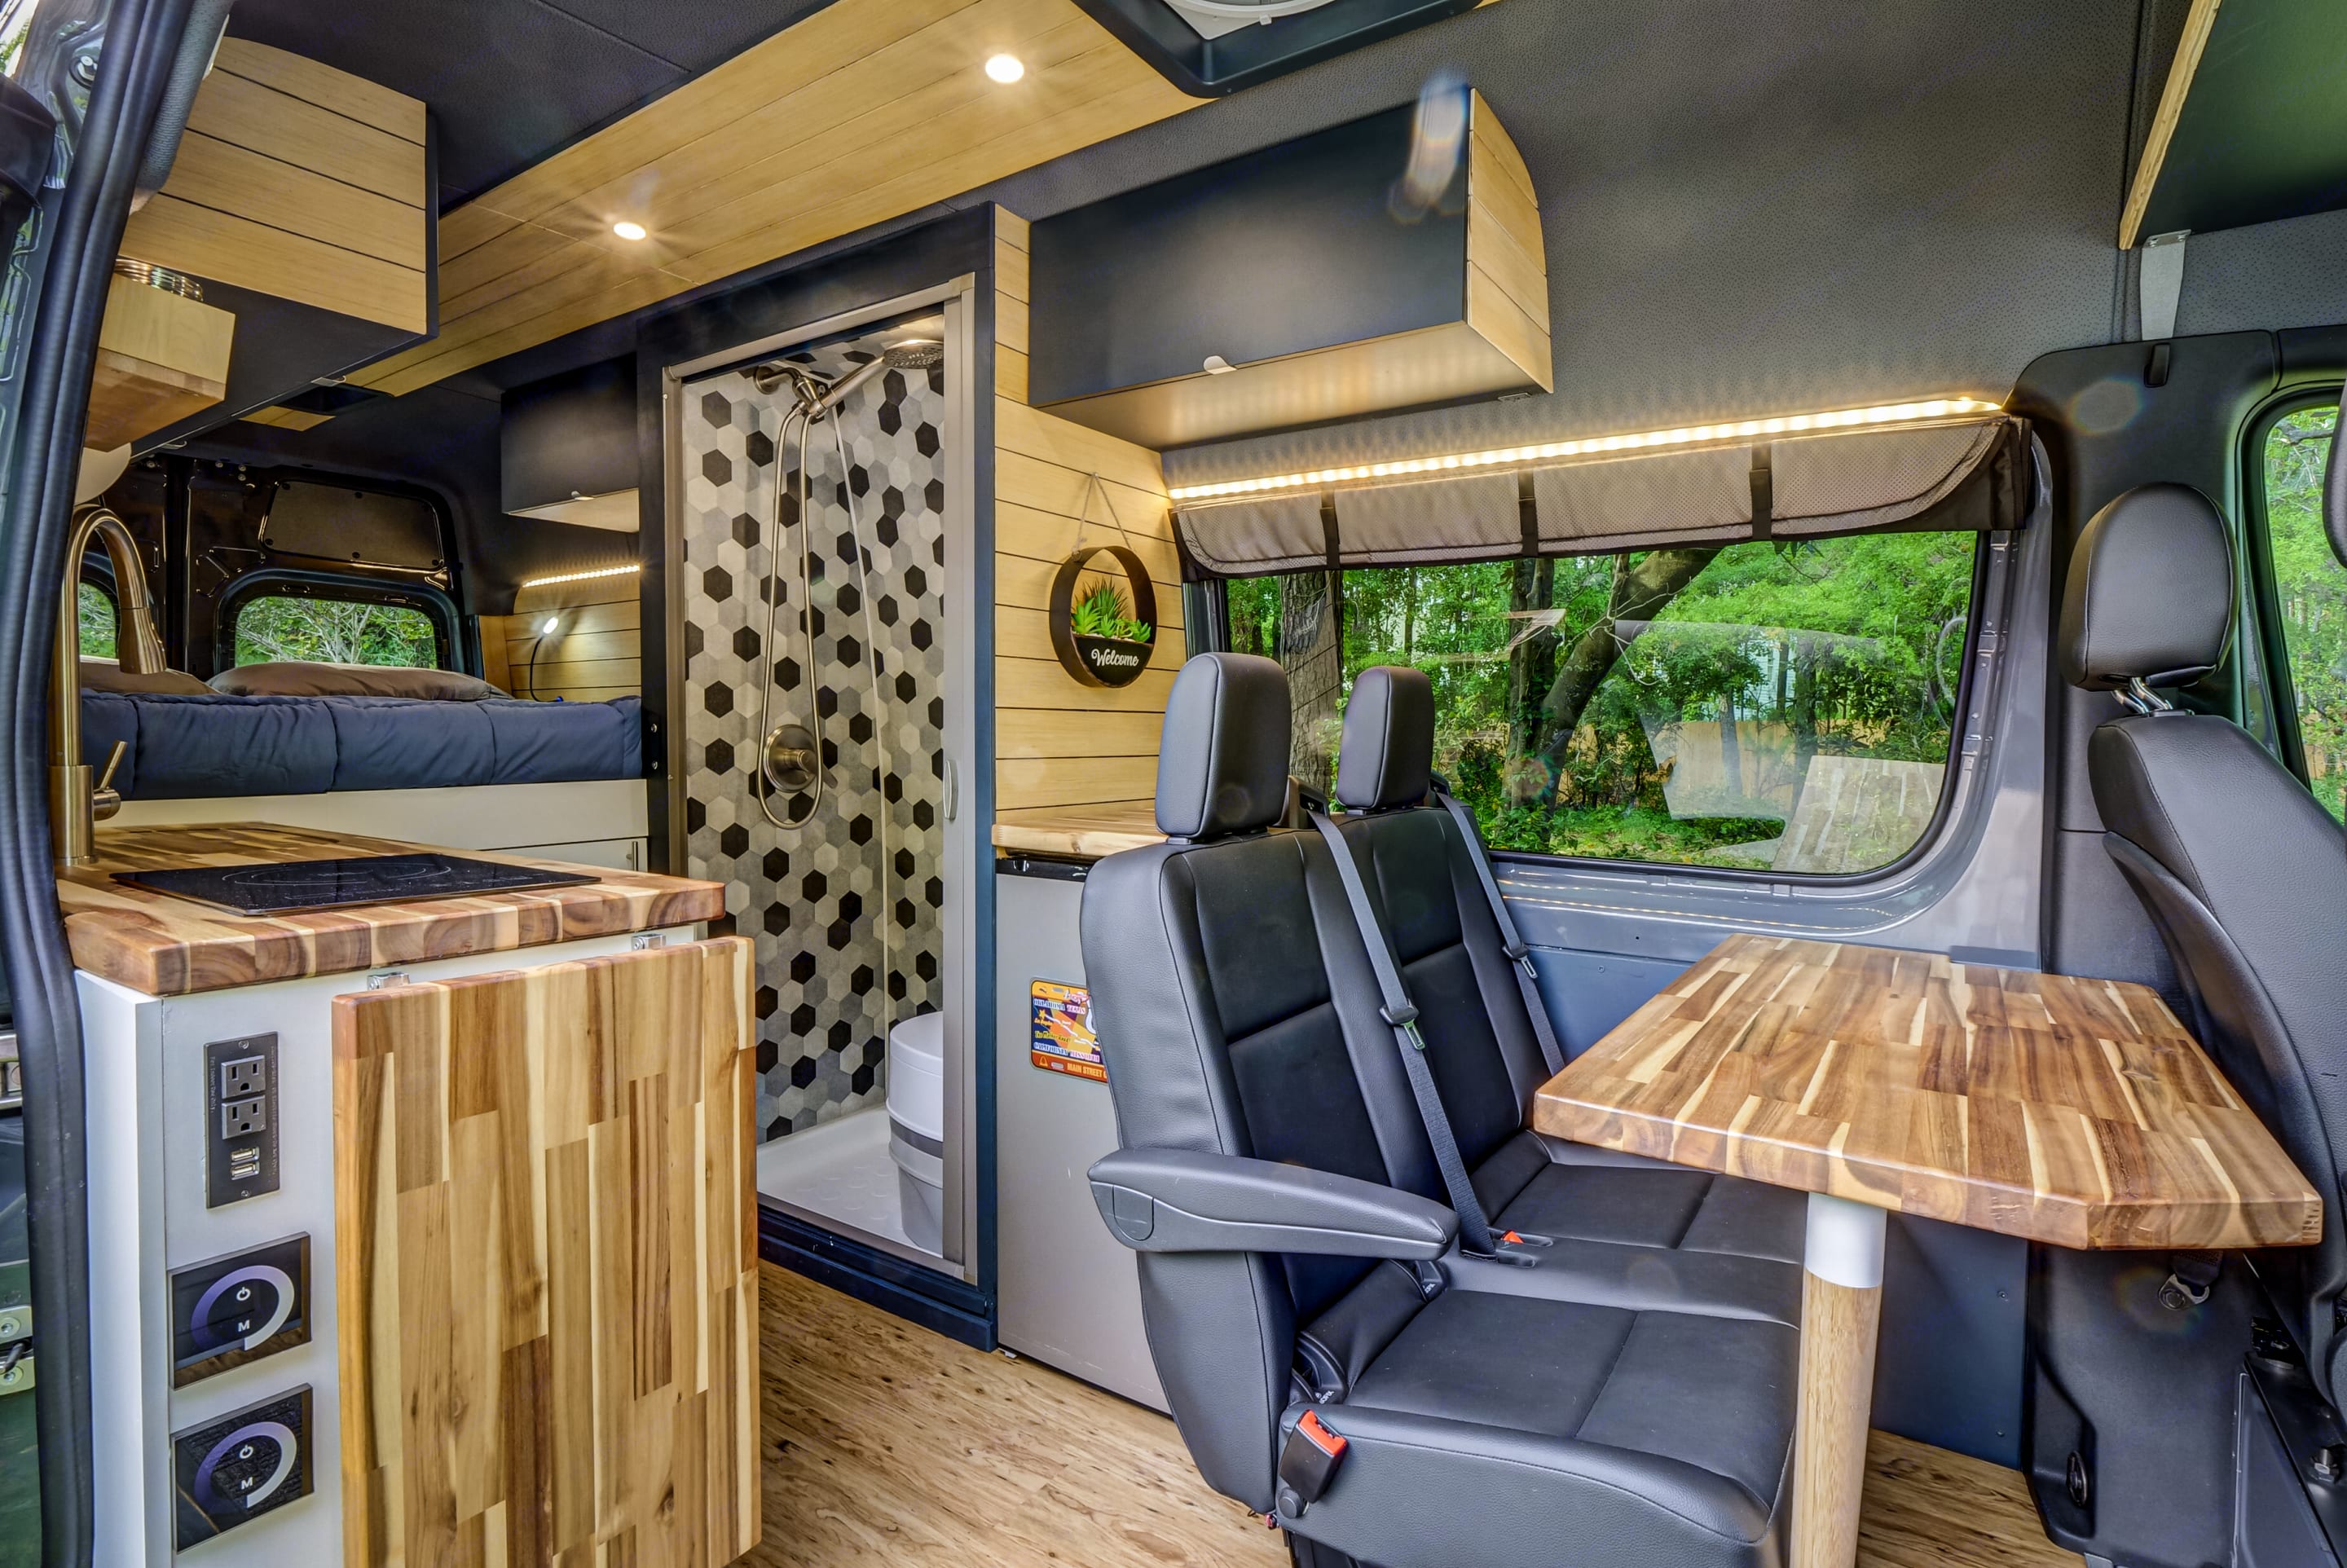 Seats swivel to allow 4 people to eat comfortably at the table.  When not used the table can be stored easily behind the seat.. Mercedes-Benz Sprinter 2020